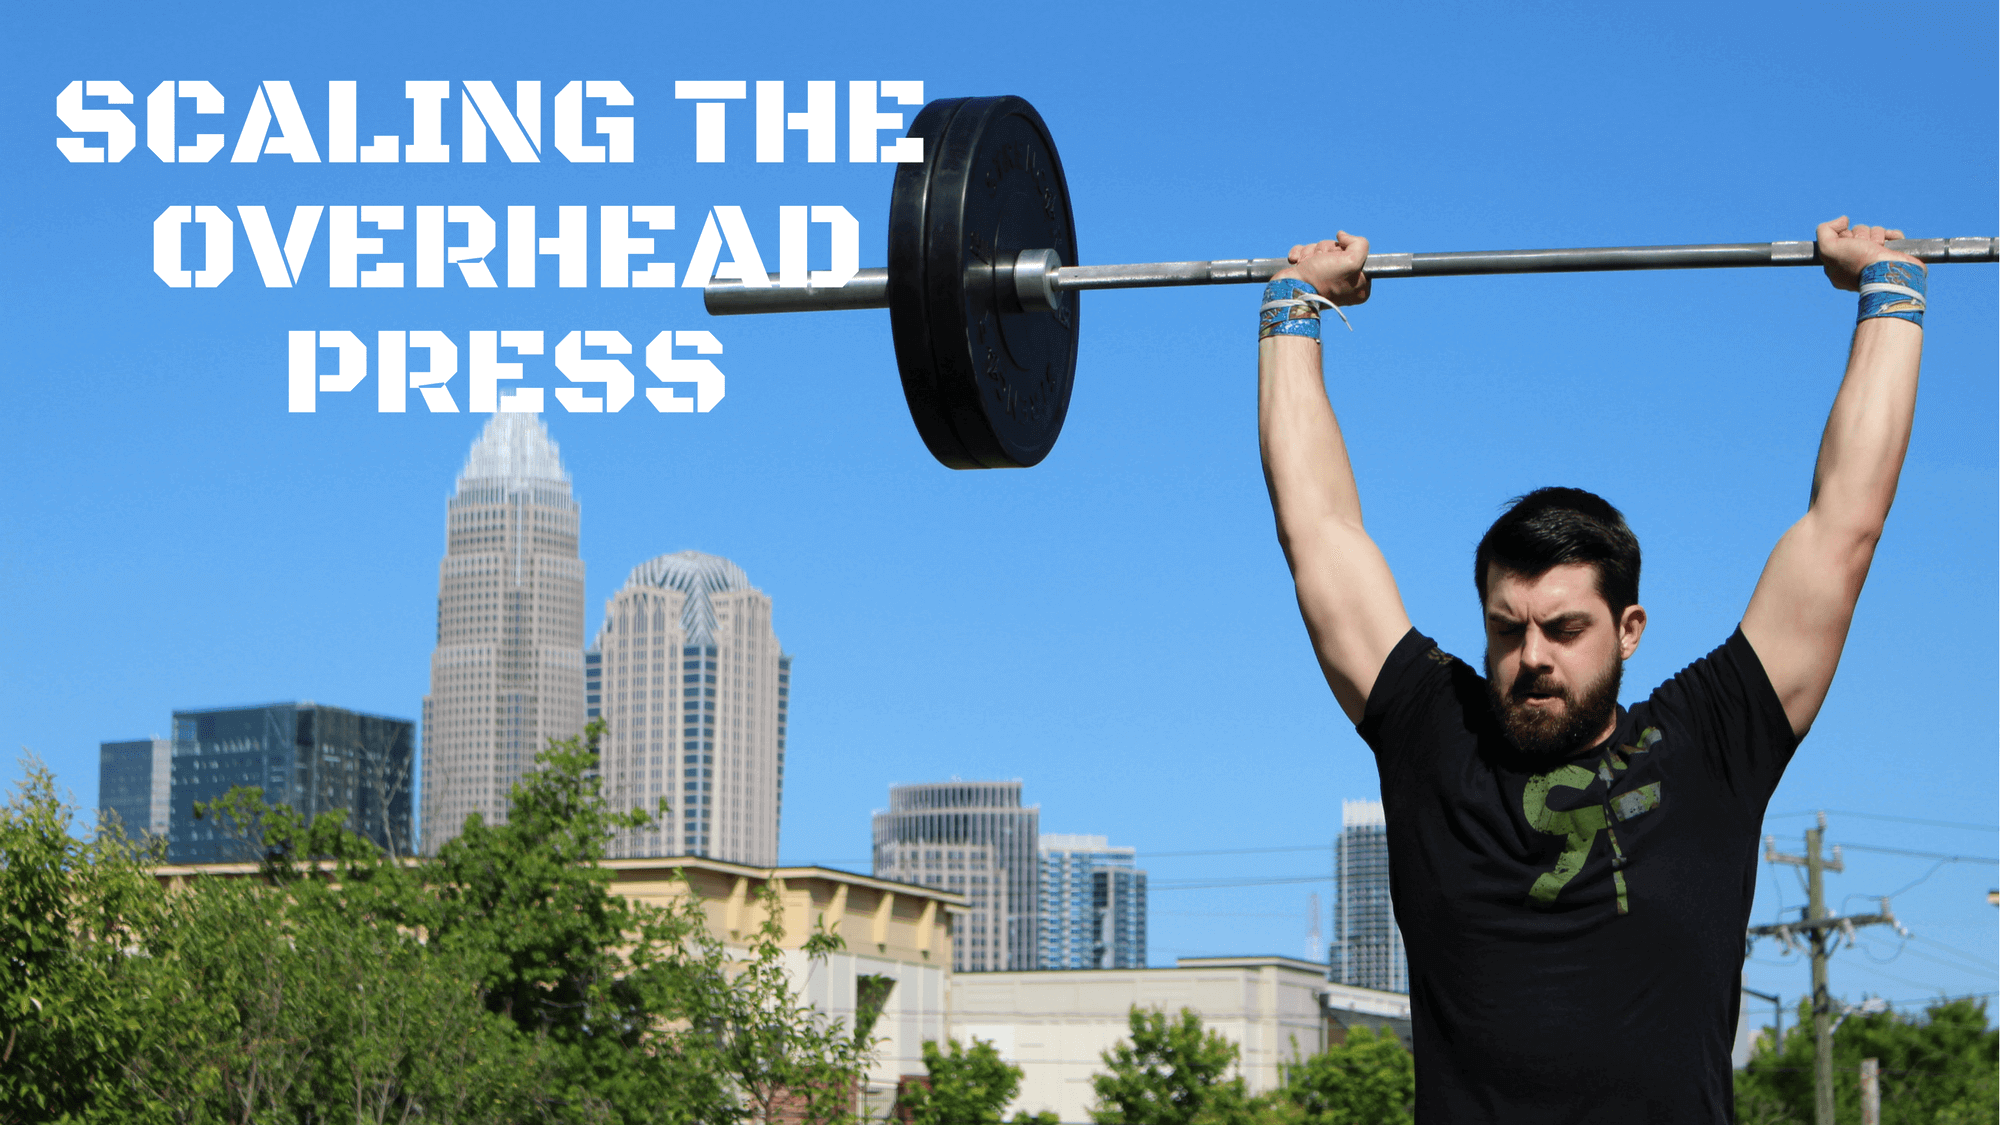 Scaling the overhead press